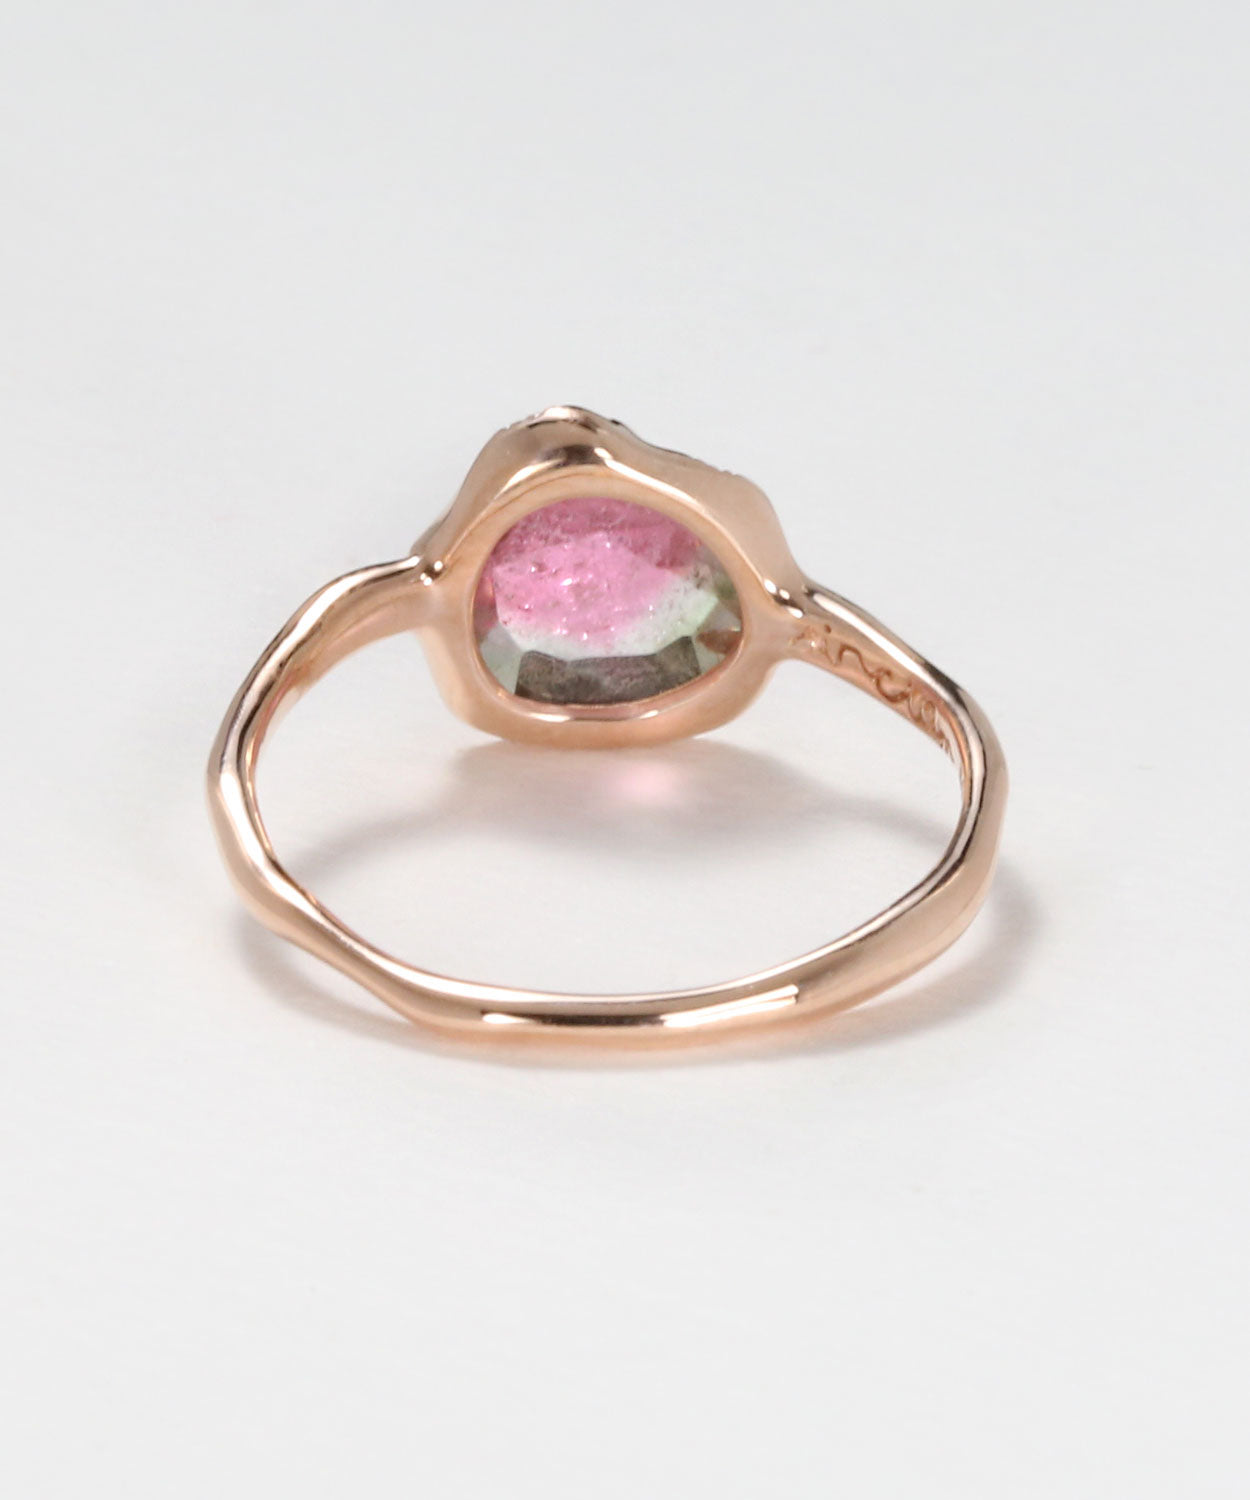 Cosmic Light Ring 14k rose gold size 6